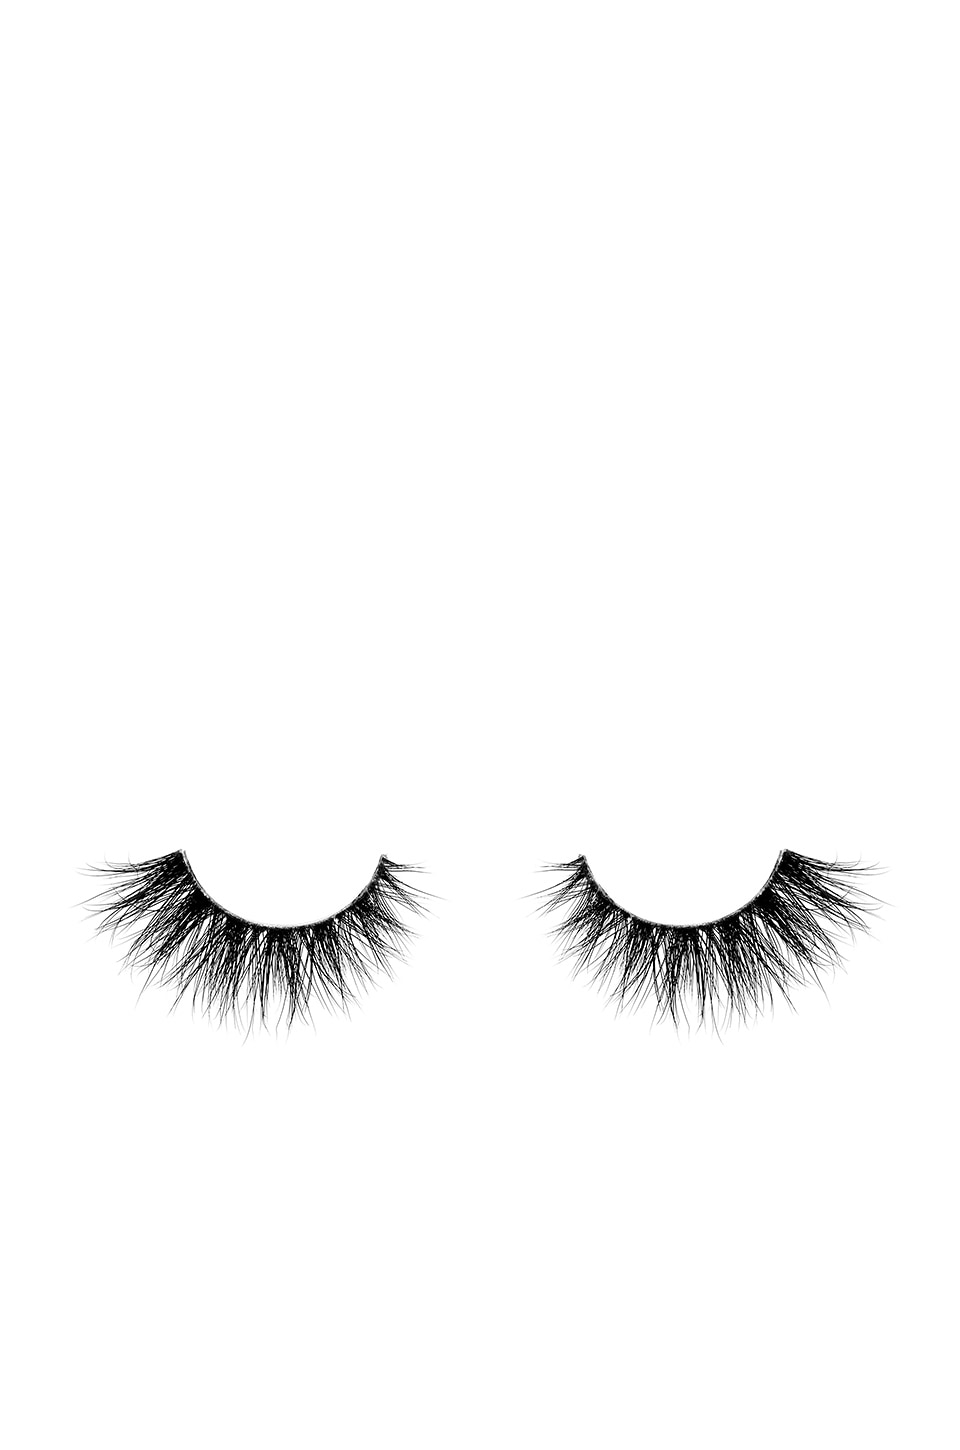 VELOUR LASHES WHISP IT REAL GOOD MINK LASHES